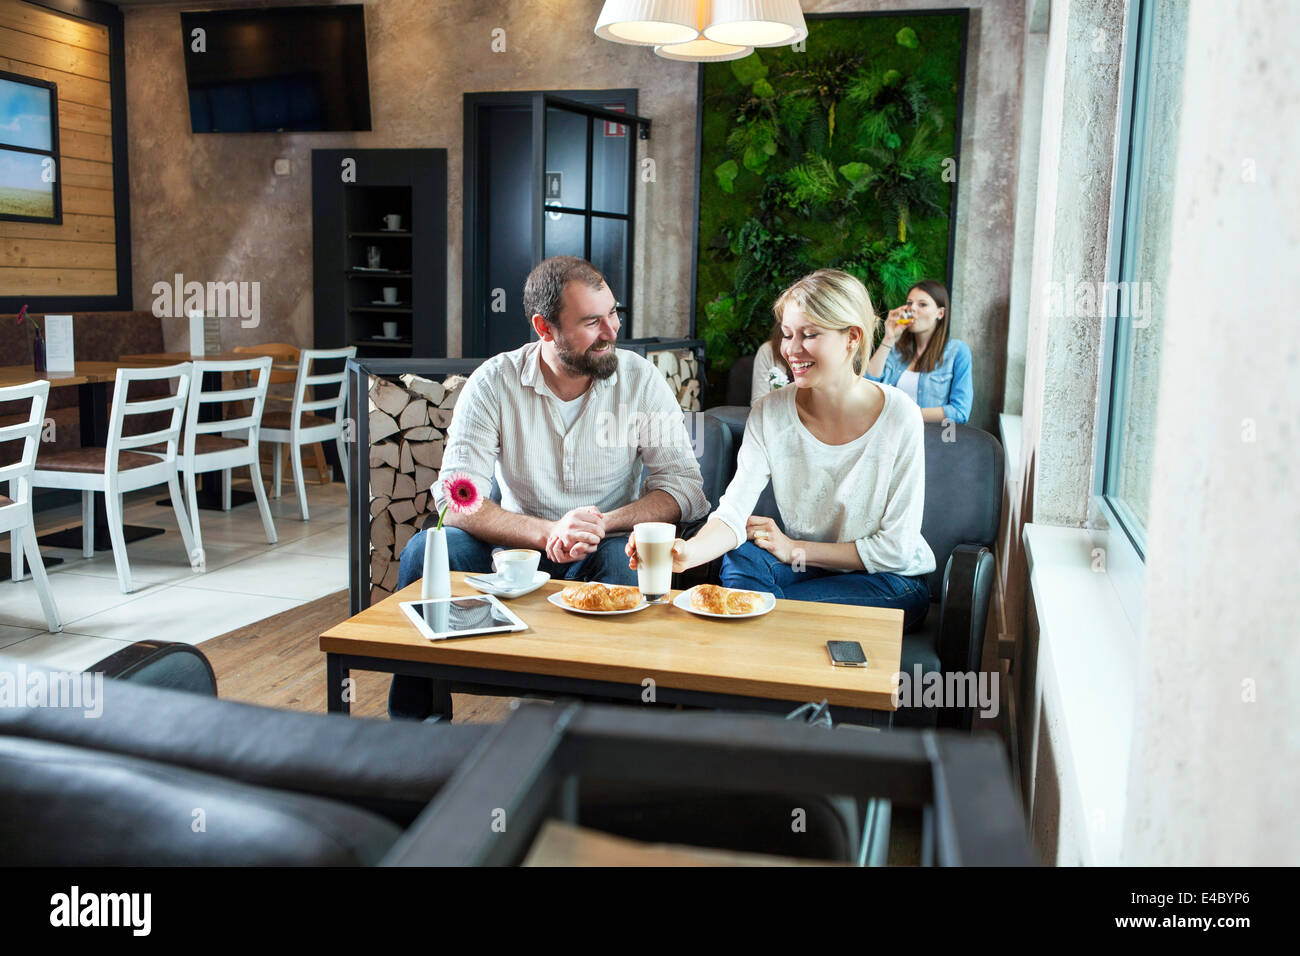 Couple flirting in a cafe, people in background - Stock Image